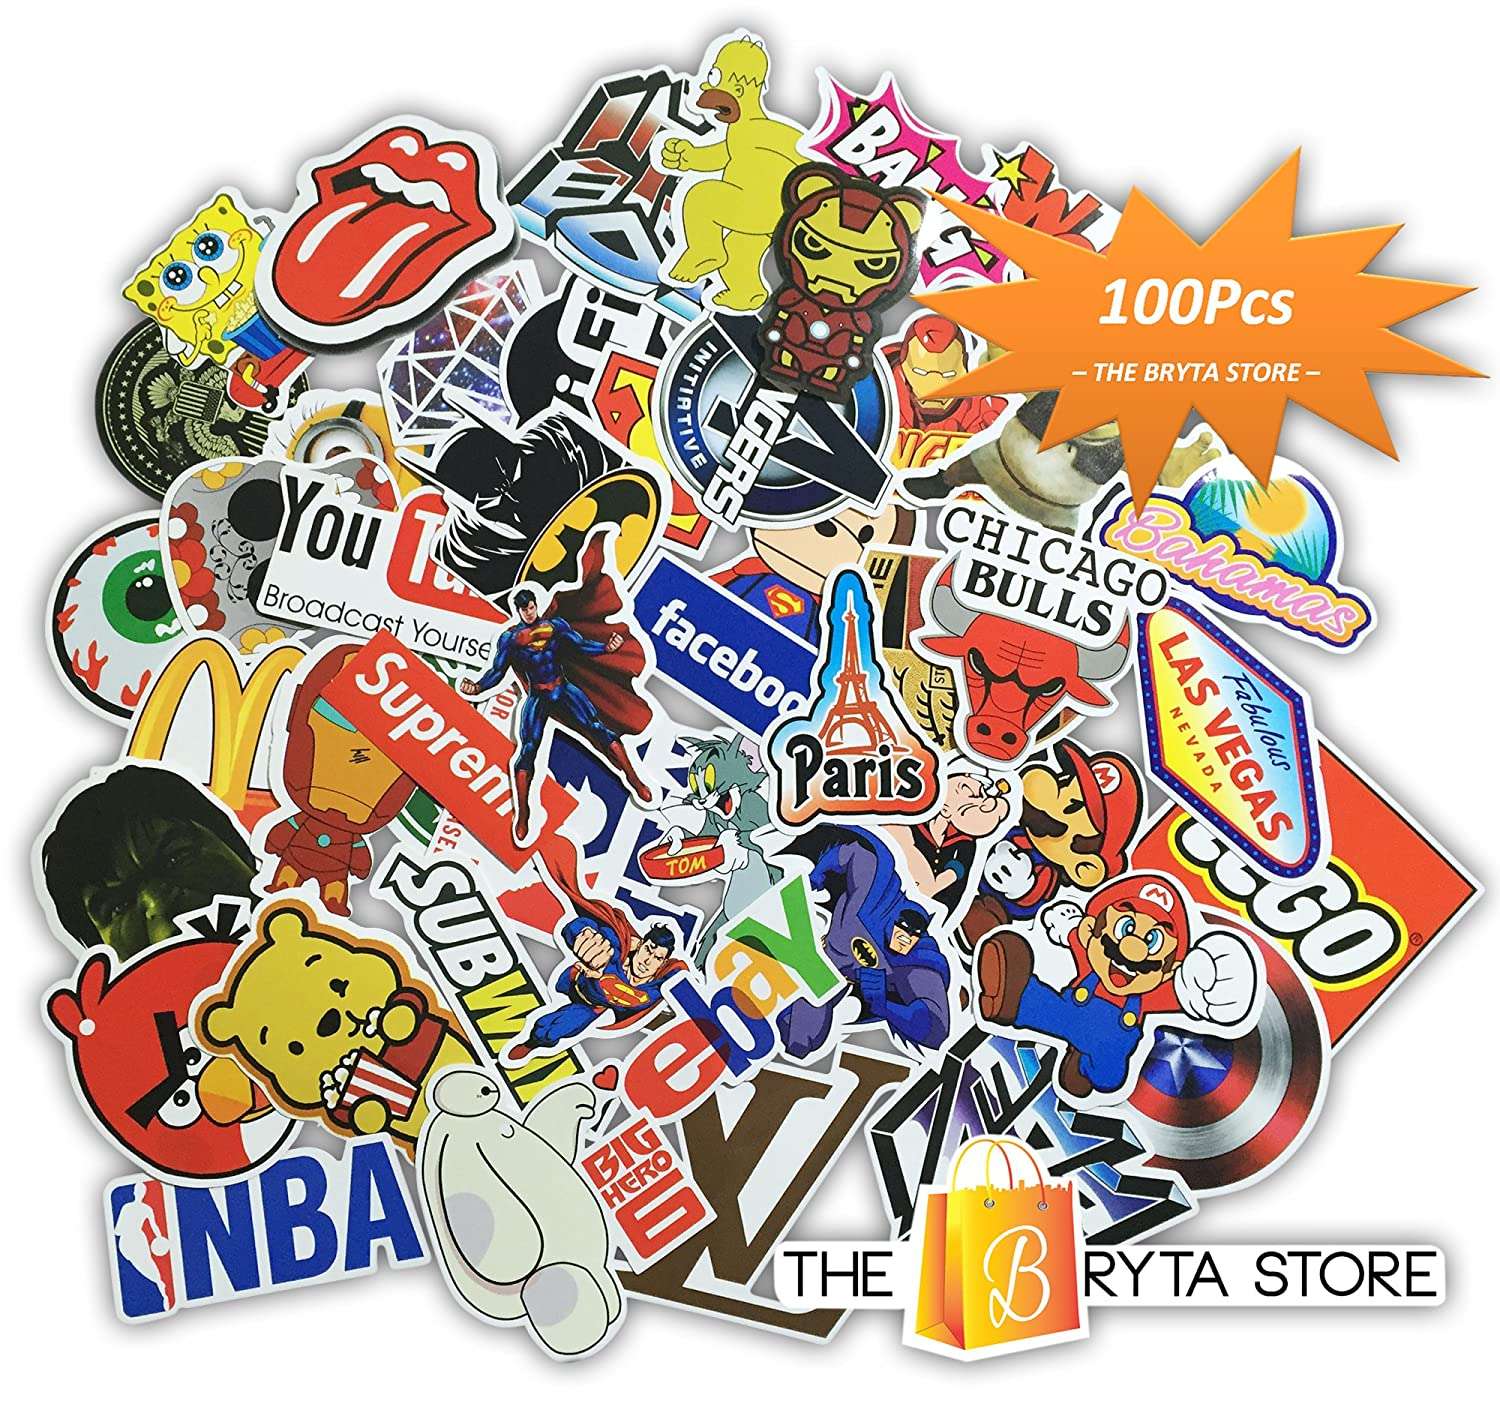 Amazon 100 premium stickers decals vinyls pack of the best amazon 100 premium stickers decals vinyls pack of the best selling cool sticker perfect to graffiti your laptop macbook skateboard luggage car amipublicfo Gallery